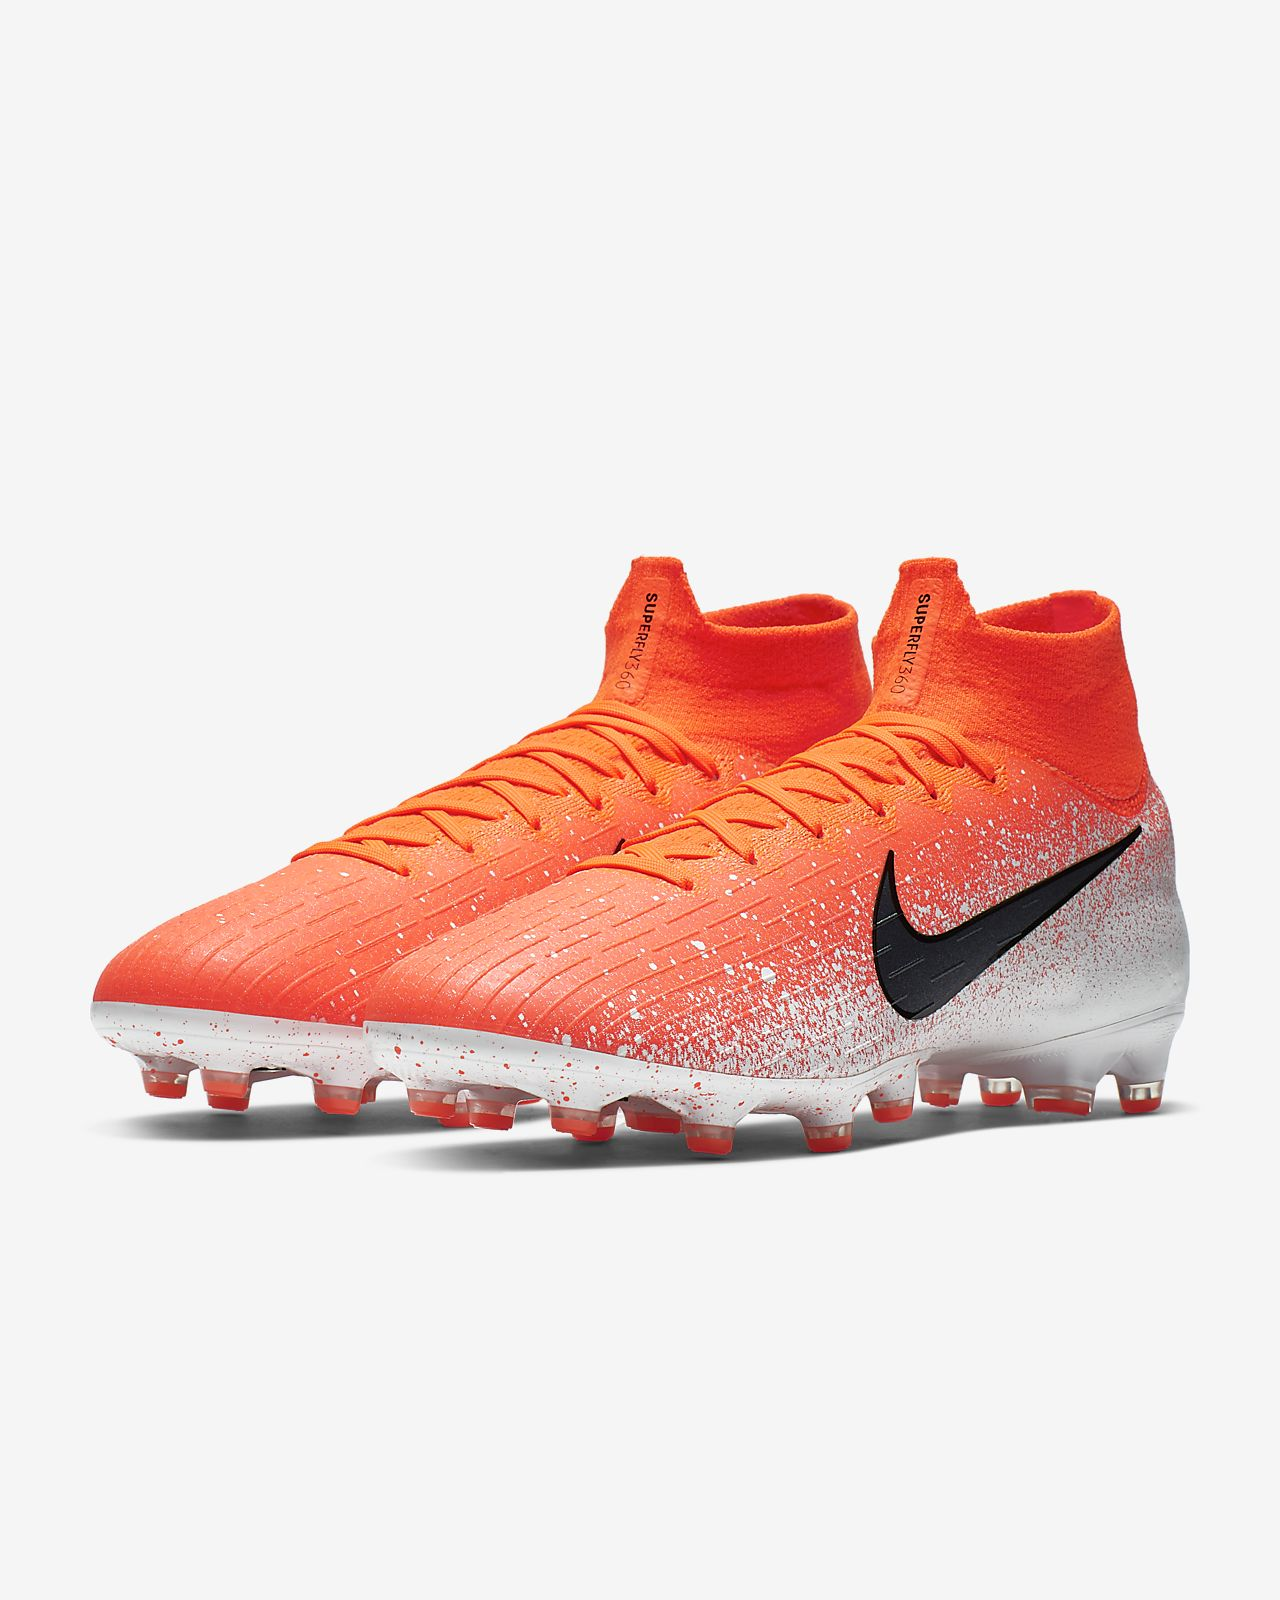 new product 2c16f ec721 Nike Mercurial Superfly 360 Elite AG-PRO Artificial-Grass Football Boot